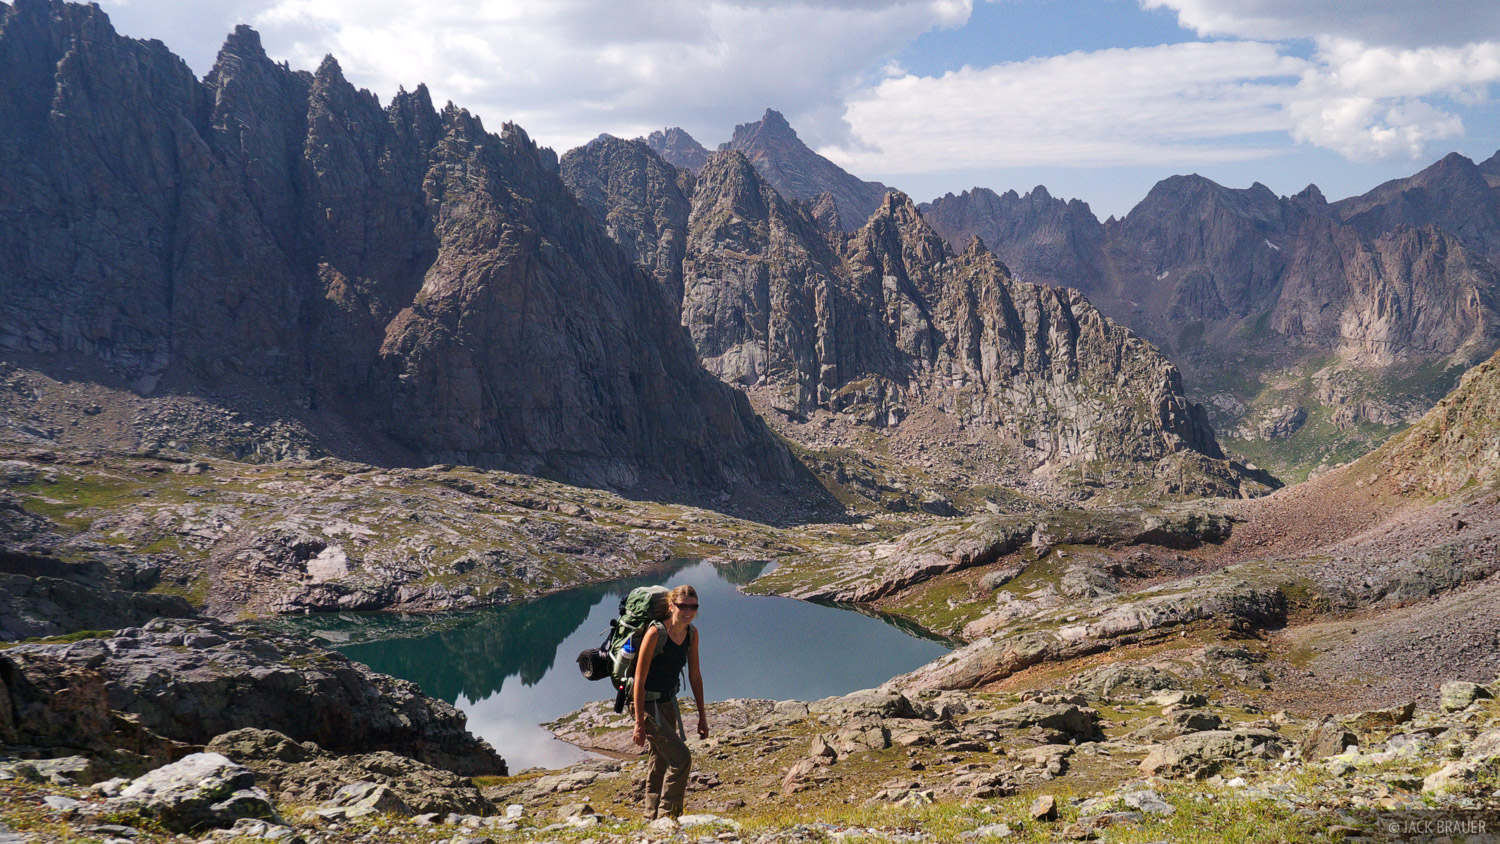 Hiking deep in the Needle Mountains in the Weminuche Wilderness.